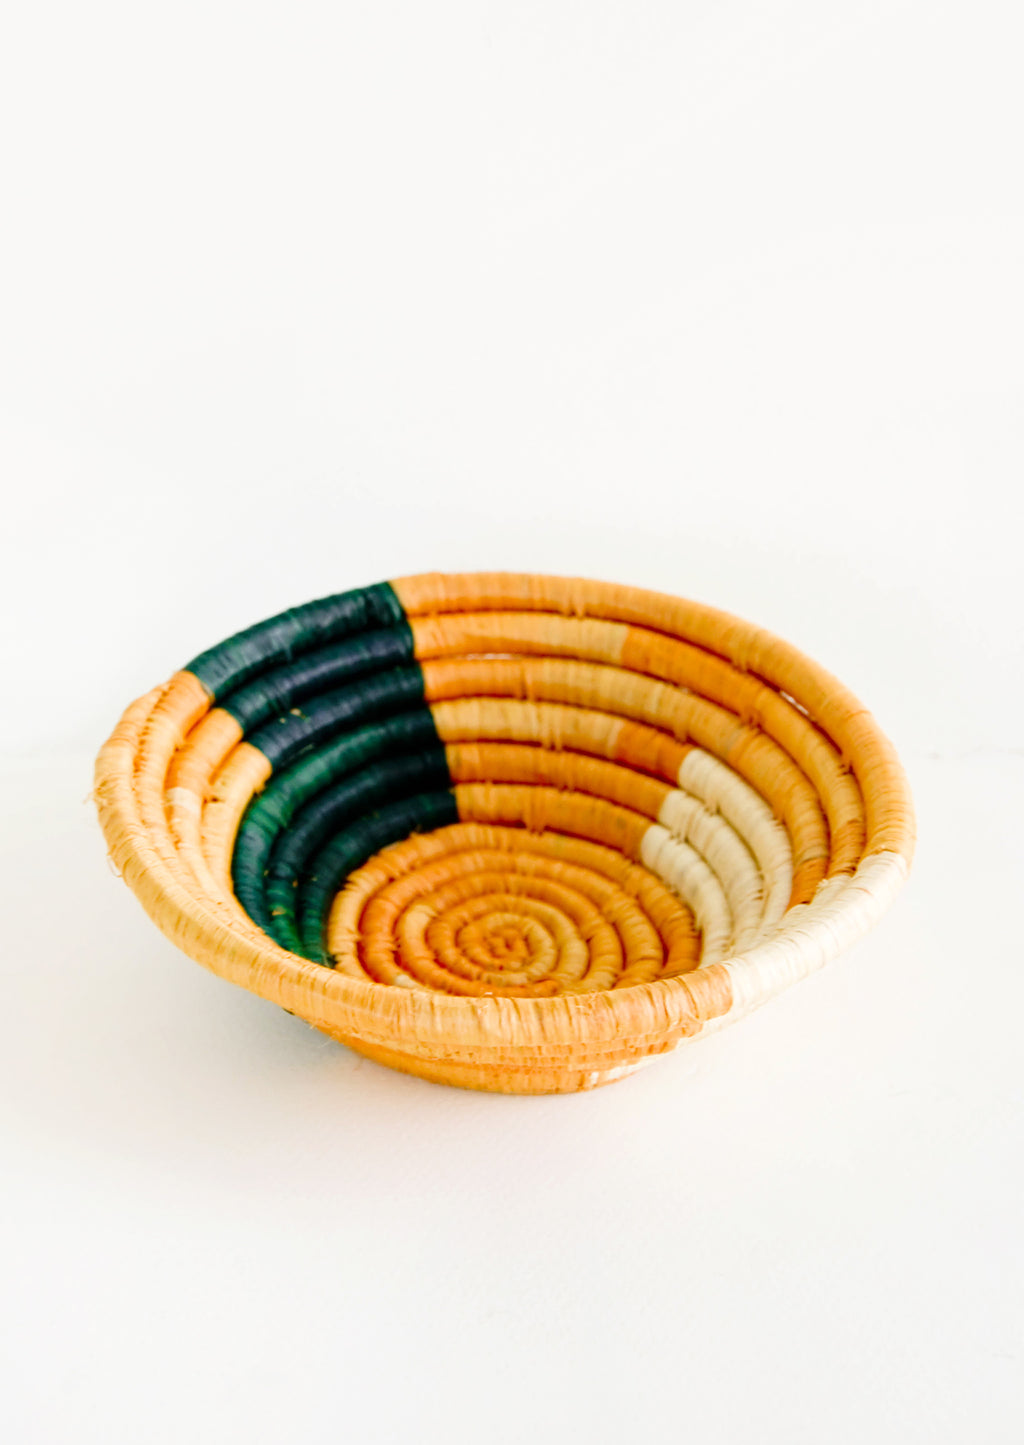 Goldenrod / Indigo Multi: Small raffia bowl in geometric pattern in mustard, green and natural